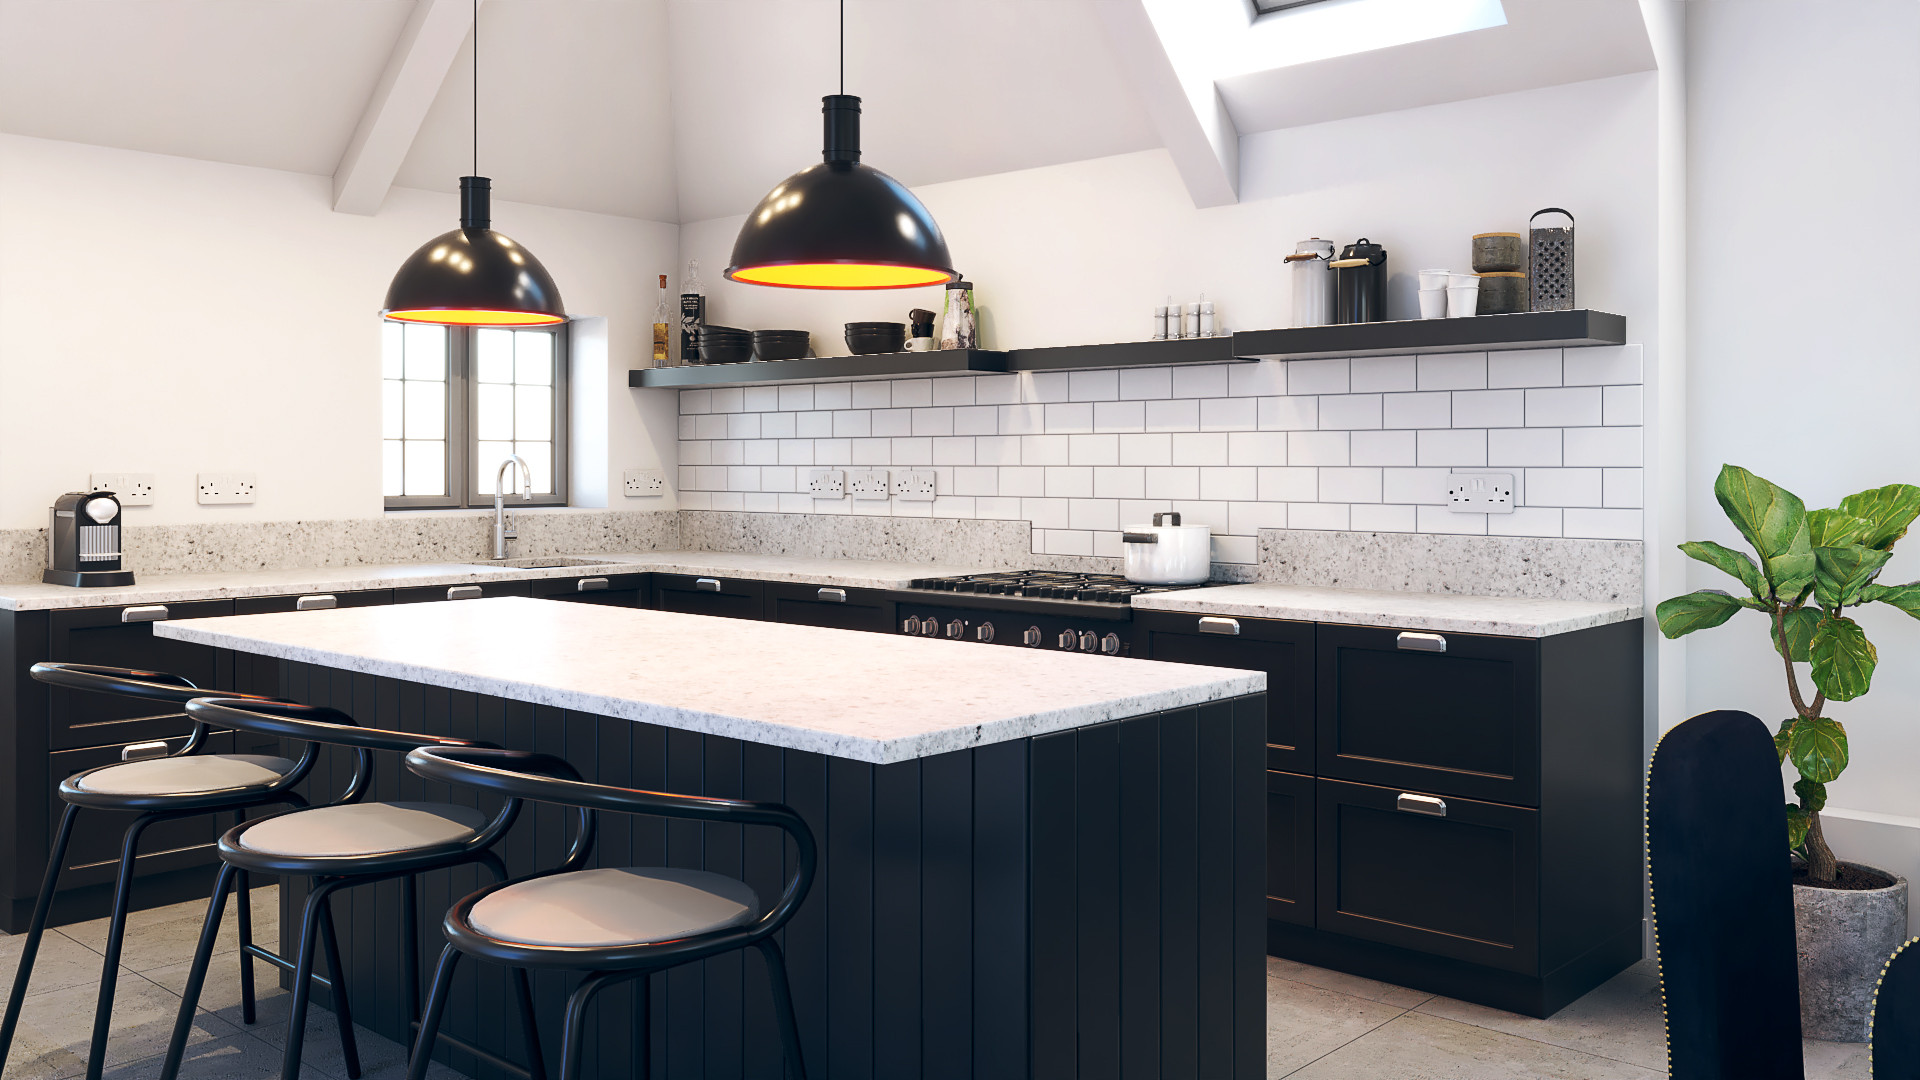 07_Blackwalls_Openplan_kitchen_1A.jpg